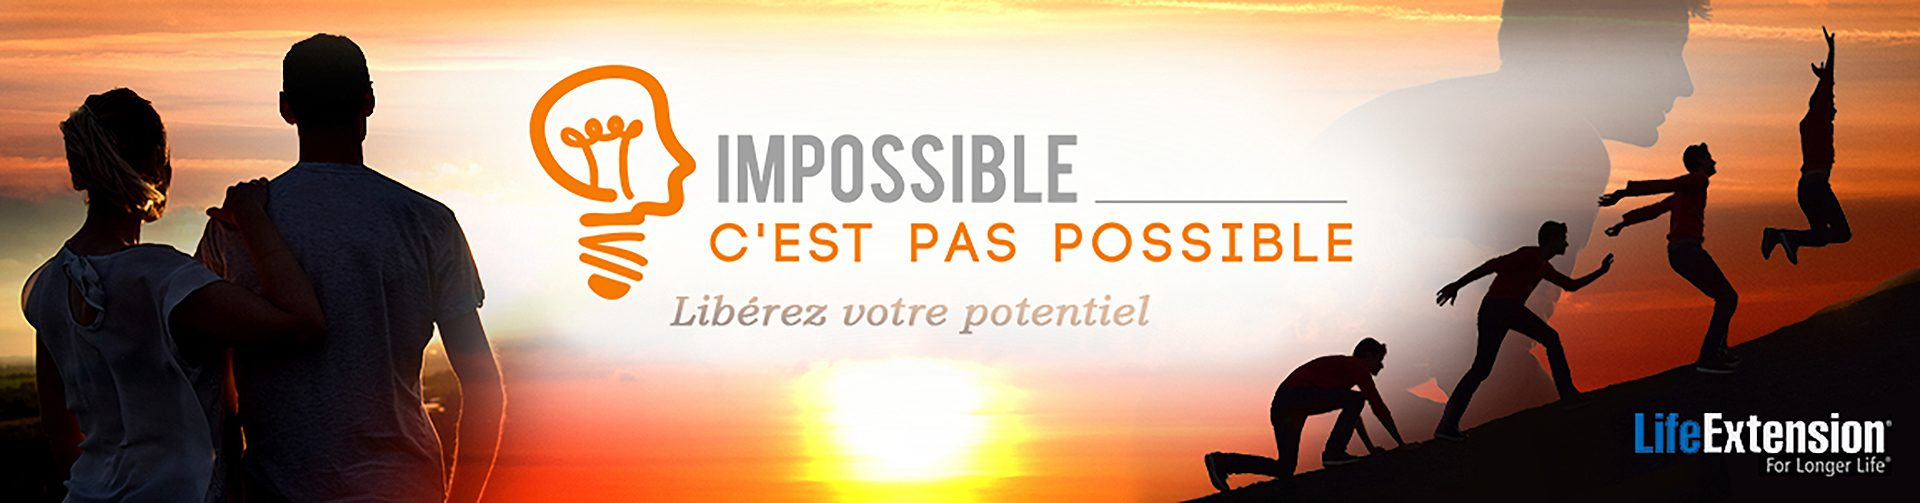 Impossible c'est pas possible